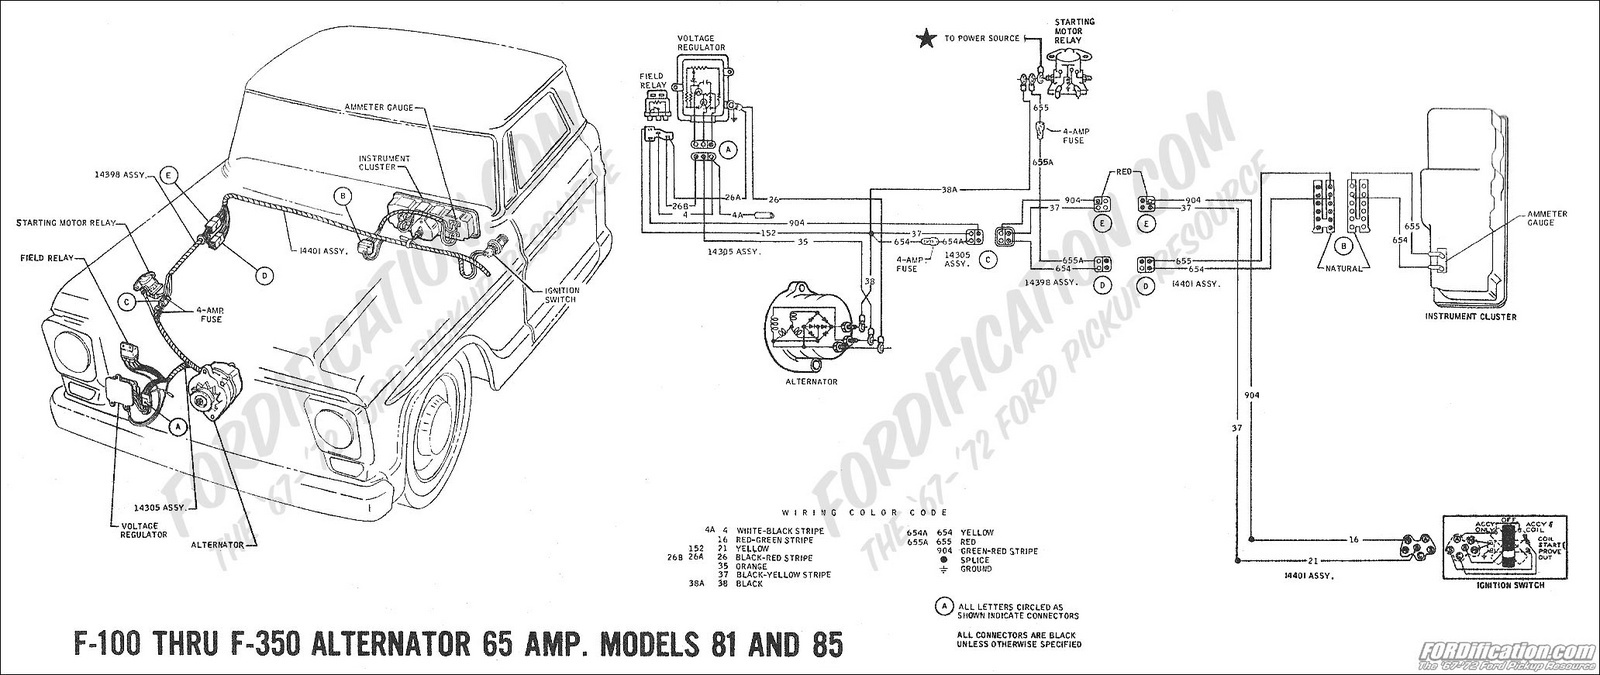 1985 chevy alternator wiring diagram with Discussion C13911 Ds652668 on 70 El Camino Ss Wiring Diagram together with Catalog3 together with Gm Alternator Wiring likewise 1983 Cj7 Dash Wiring Diagram moreover 3p077 76 Ford 250 390 No Spark Changed.